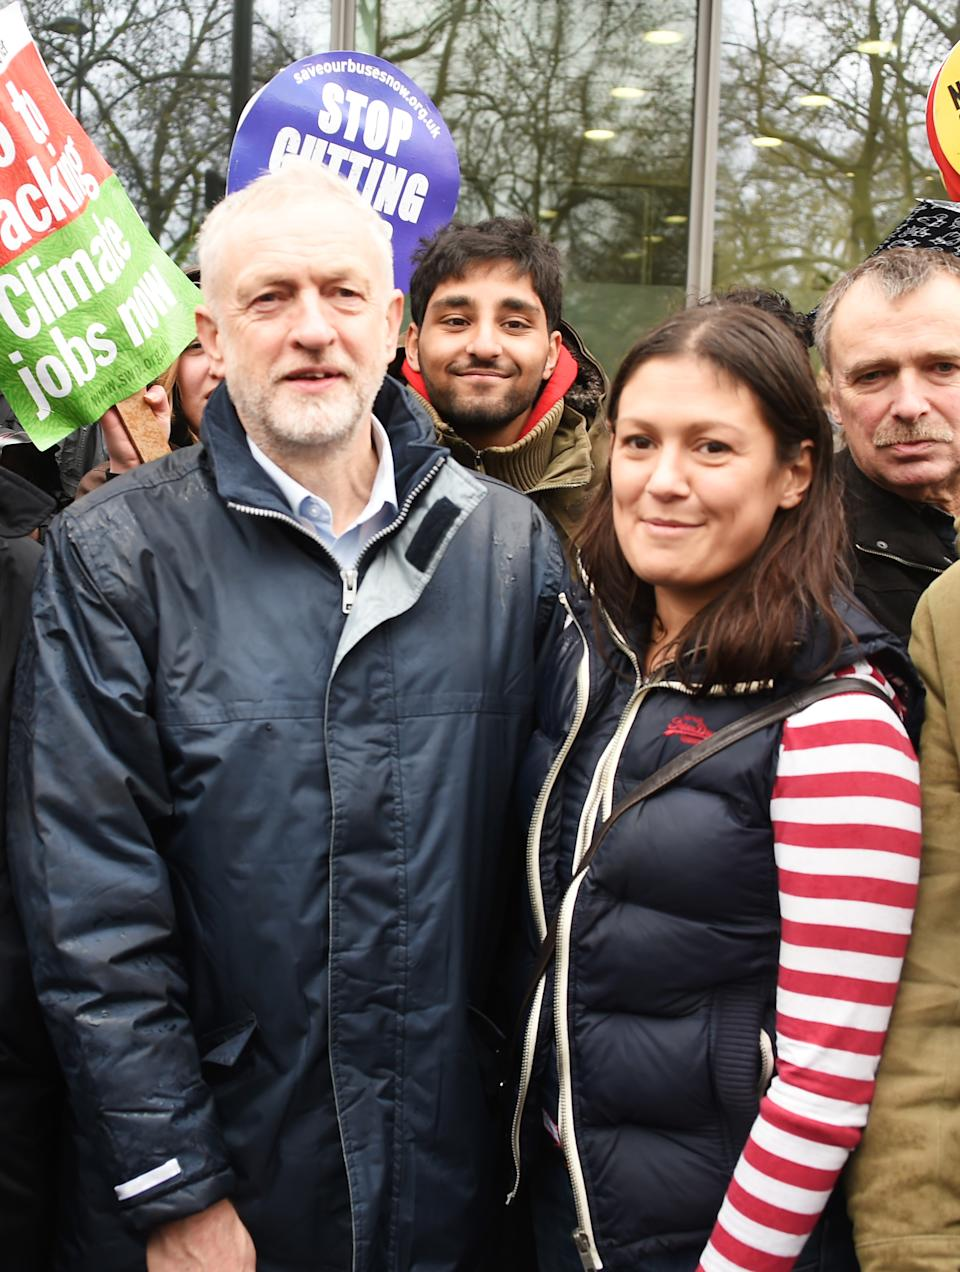 LONDON, ENGLAND - NOVEMBER 29:  Jeremy Corbyn (L), Leader of the Labour Party, and Lisa Nandy, Shadow Secretary of State for Energy and Climate Change,  attend The People's March for Climate, Justice and Jobs ahead of COP21 on November 29, 2015 in London, England.  (Photo by David M. Benett/Dave Benett/Getty Images)